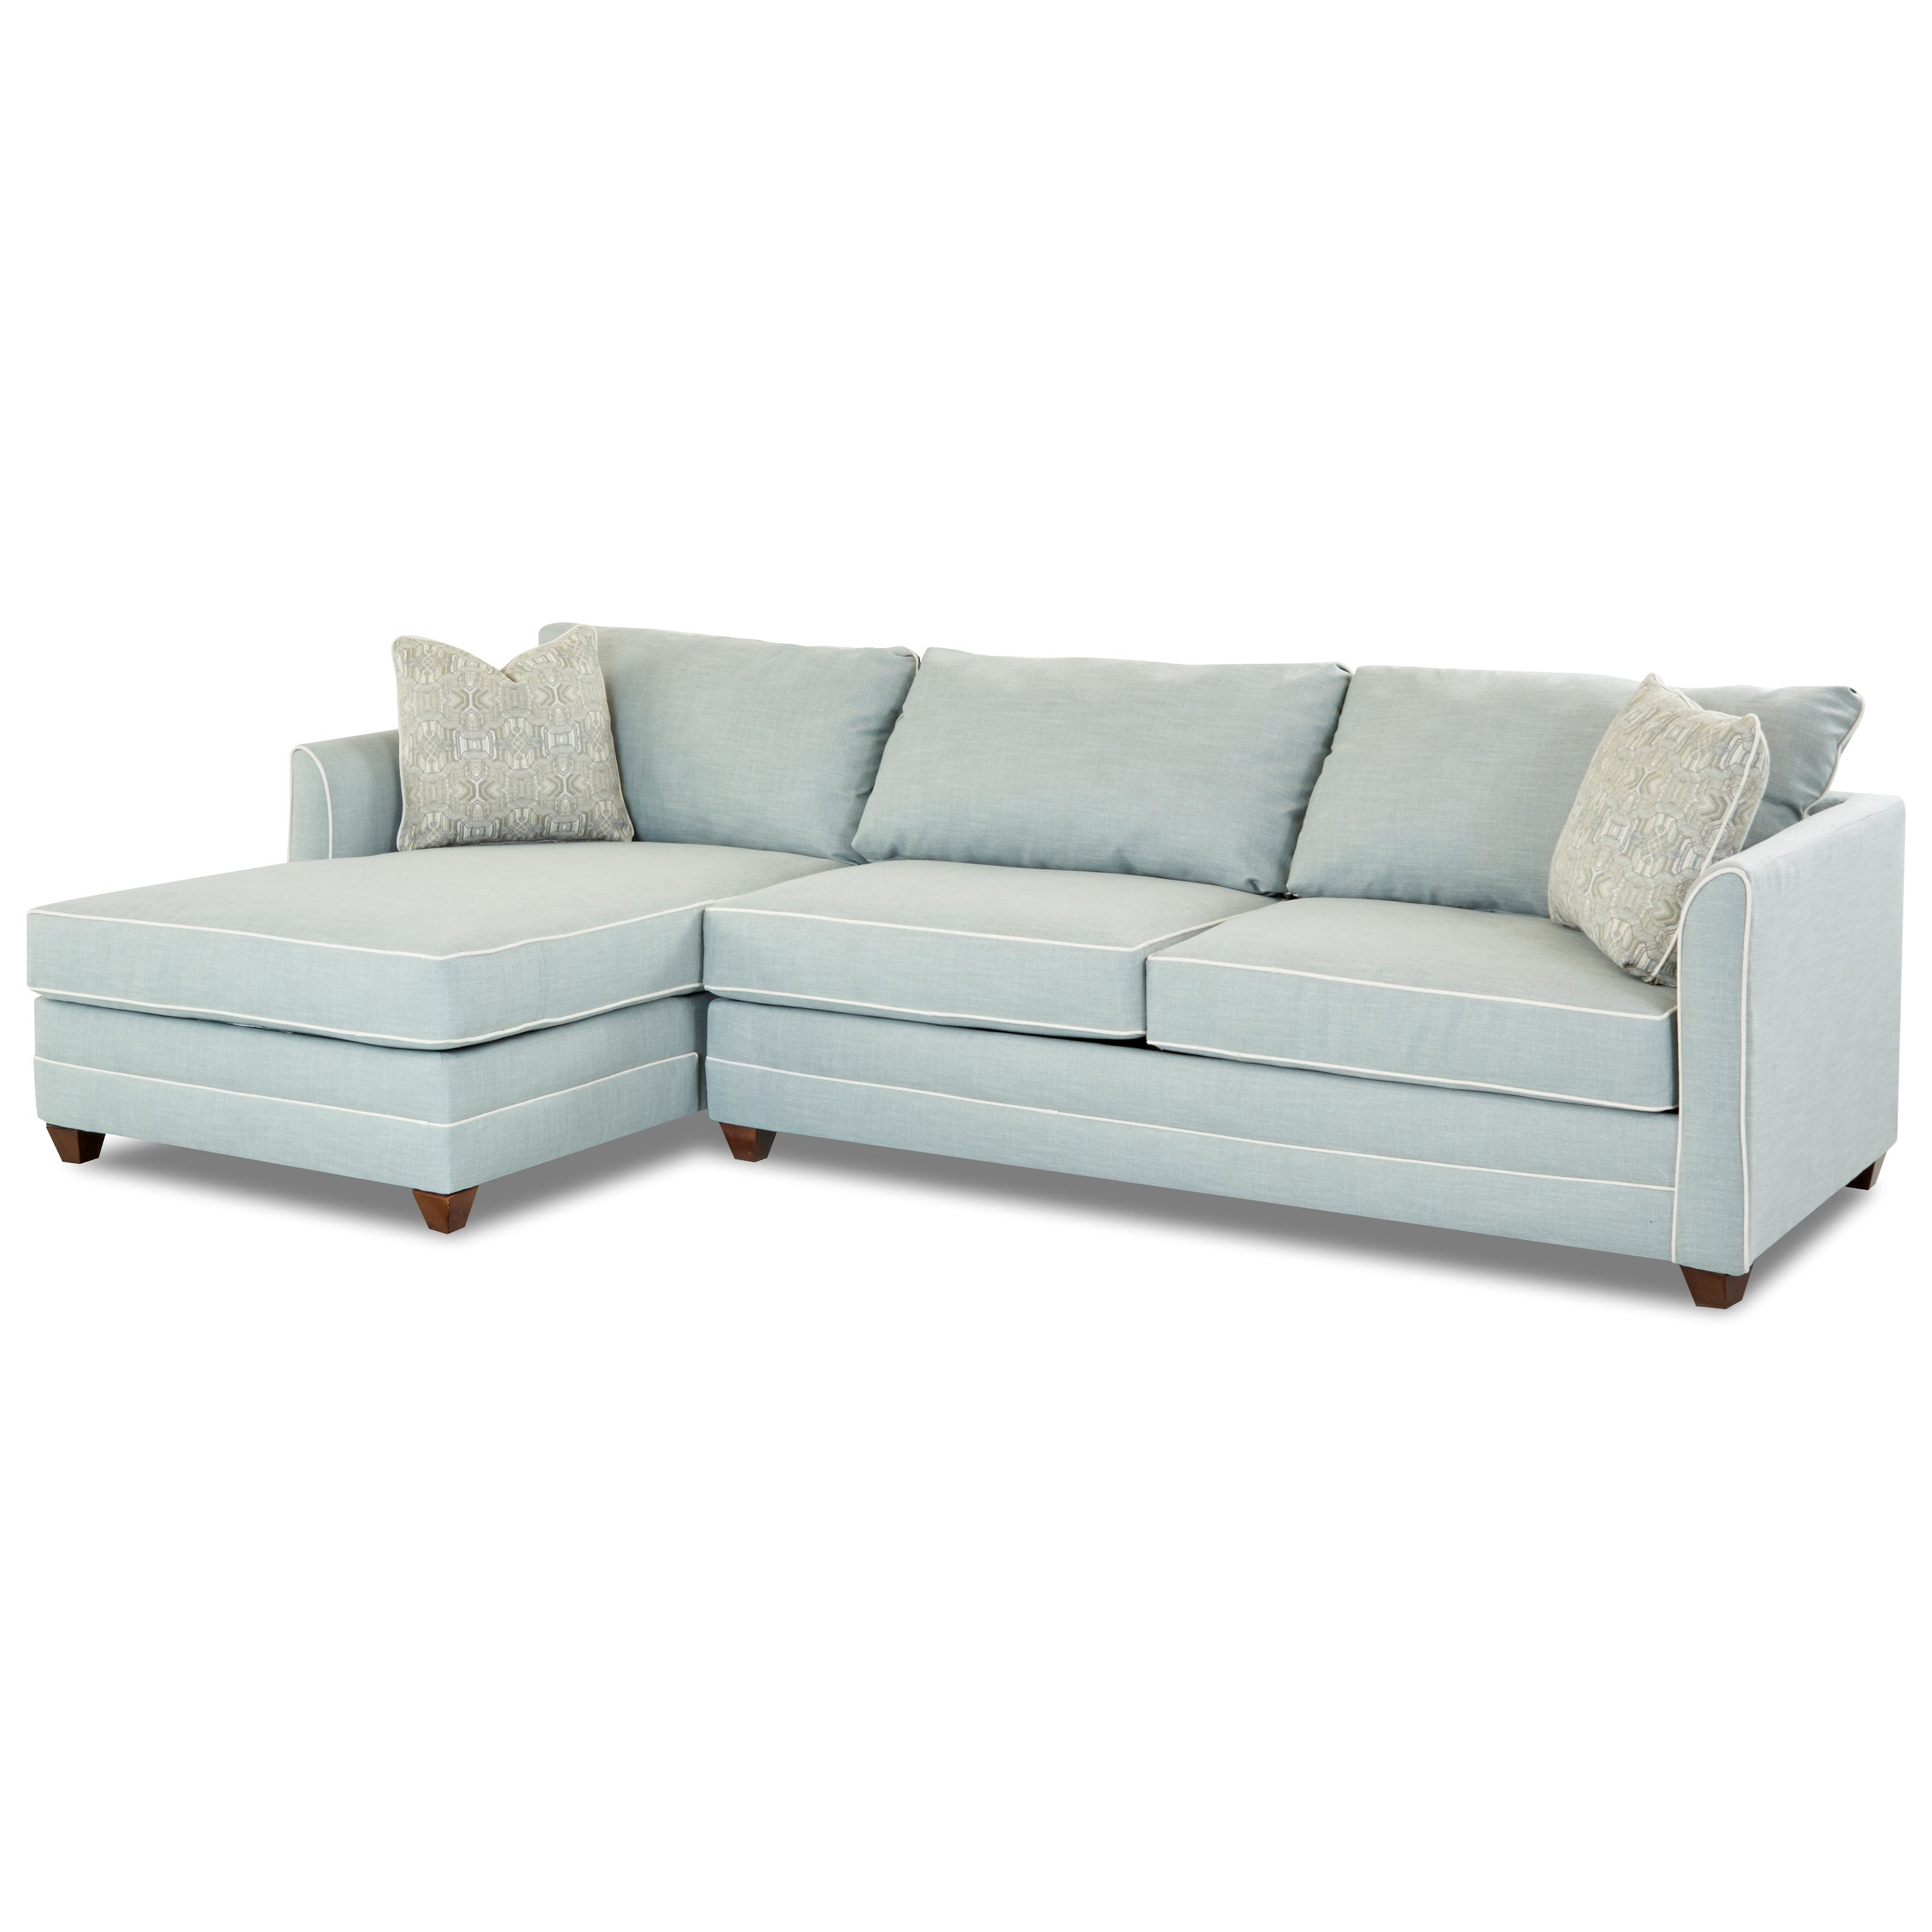 Tilly Two Piece Sectional Sofa with RAF Sleeper Sofa and Enso Memory Foam  Mattress by Klaussner at Wayside Furniture